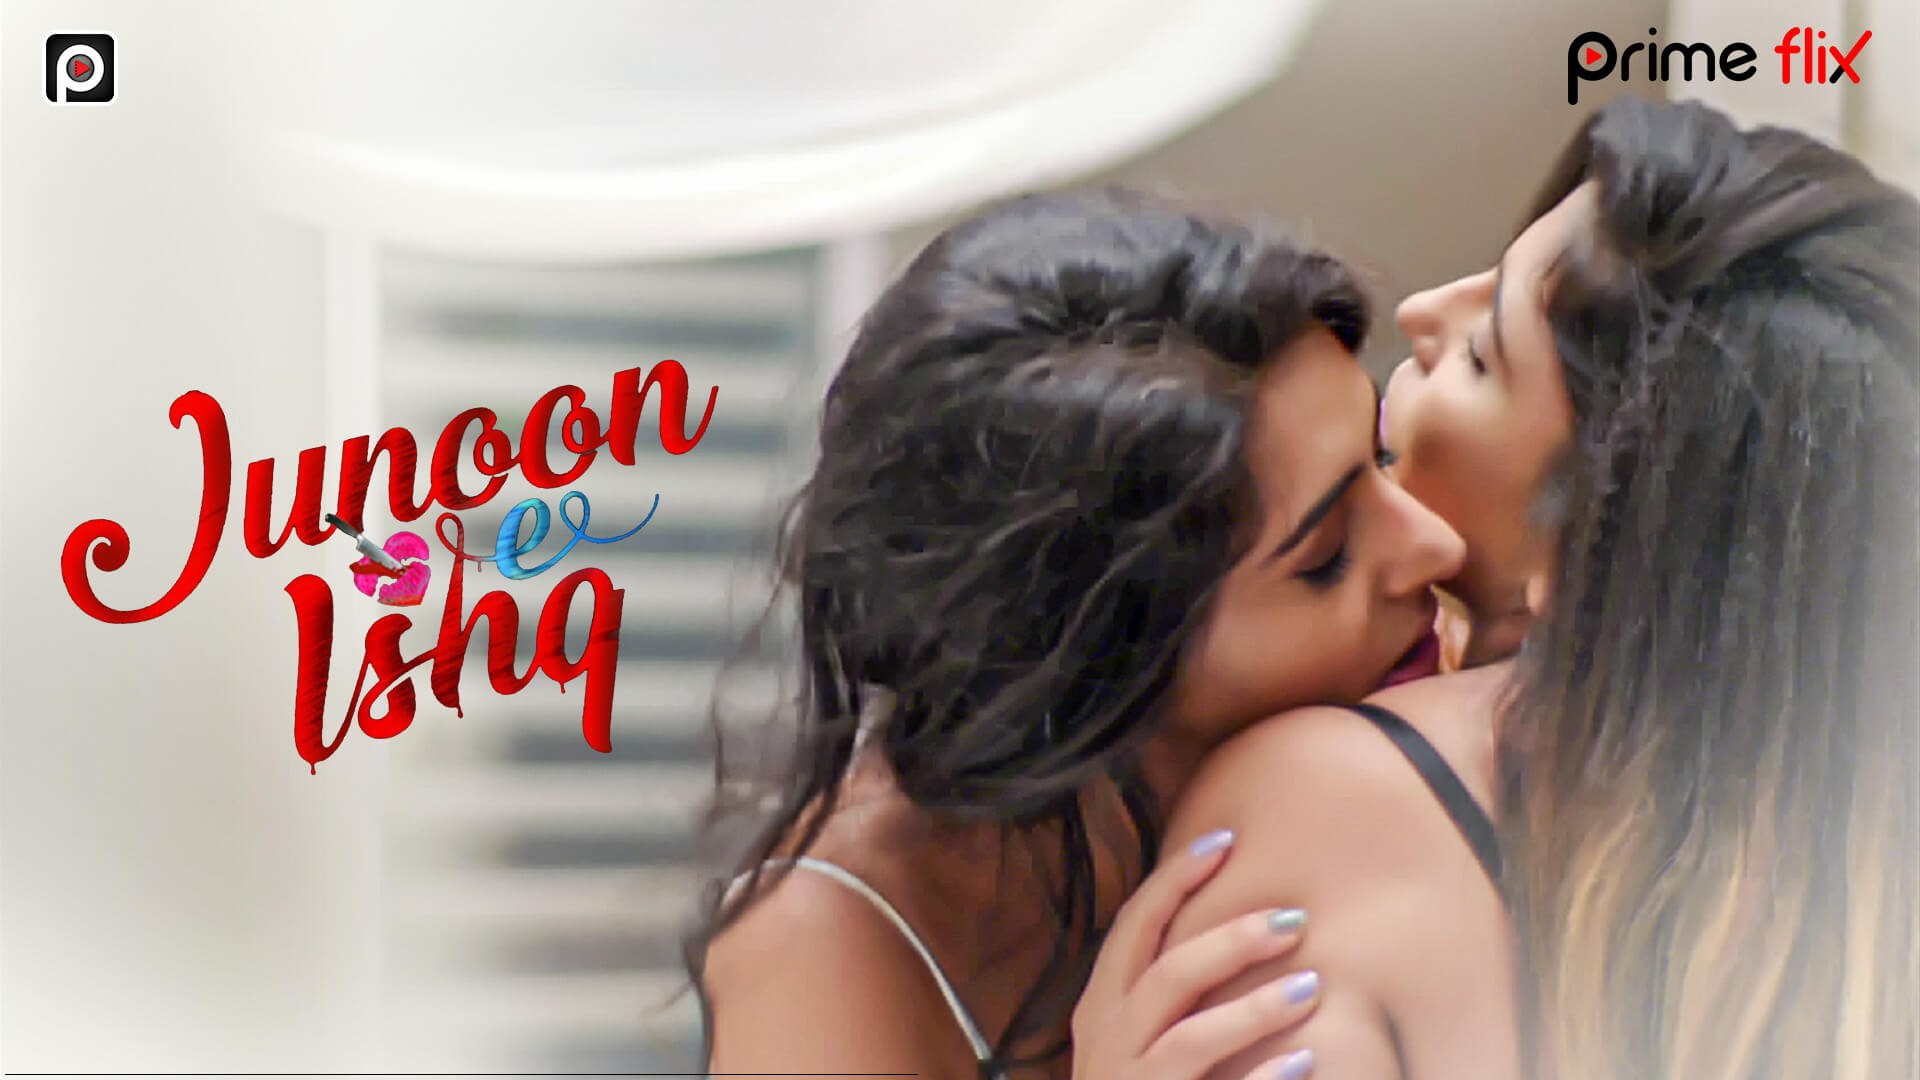 18+ Junoon e Ishq (2019) S01 Complete Hindi Hot Web Series 720p WEB-DL 500MB MKV